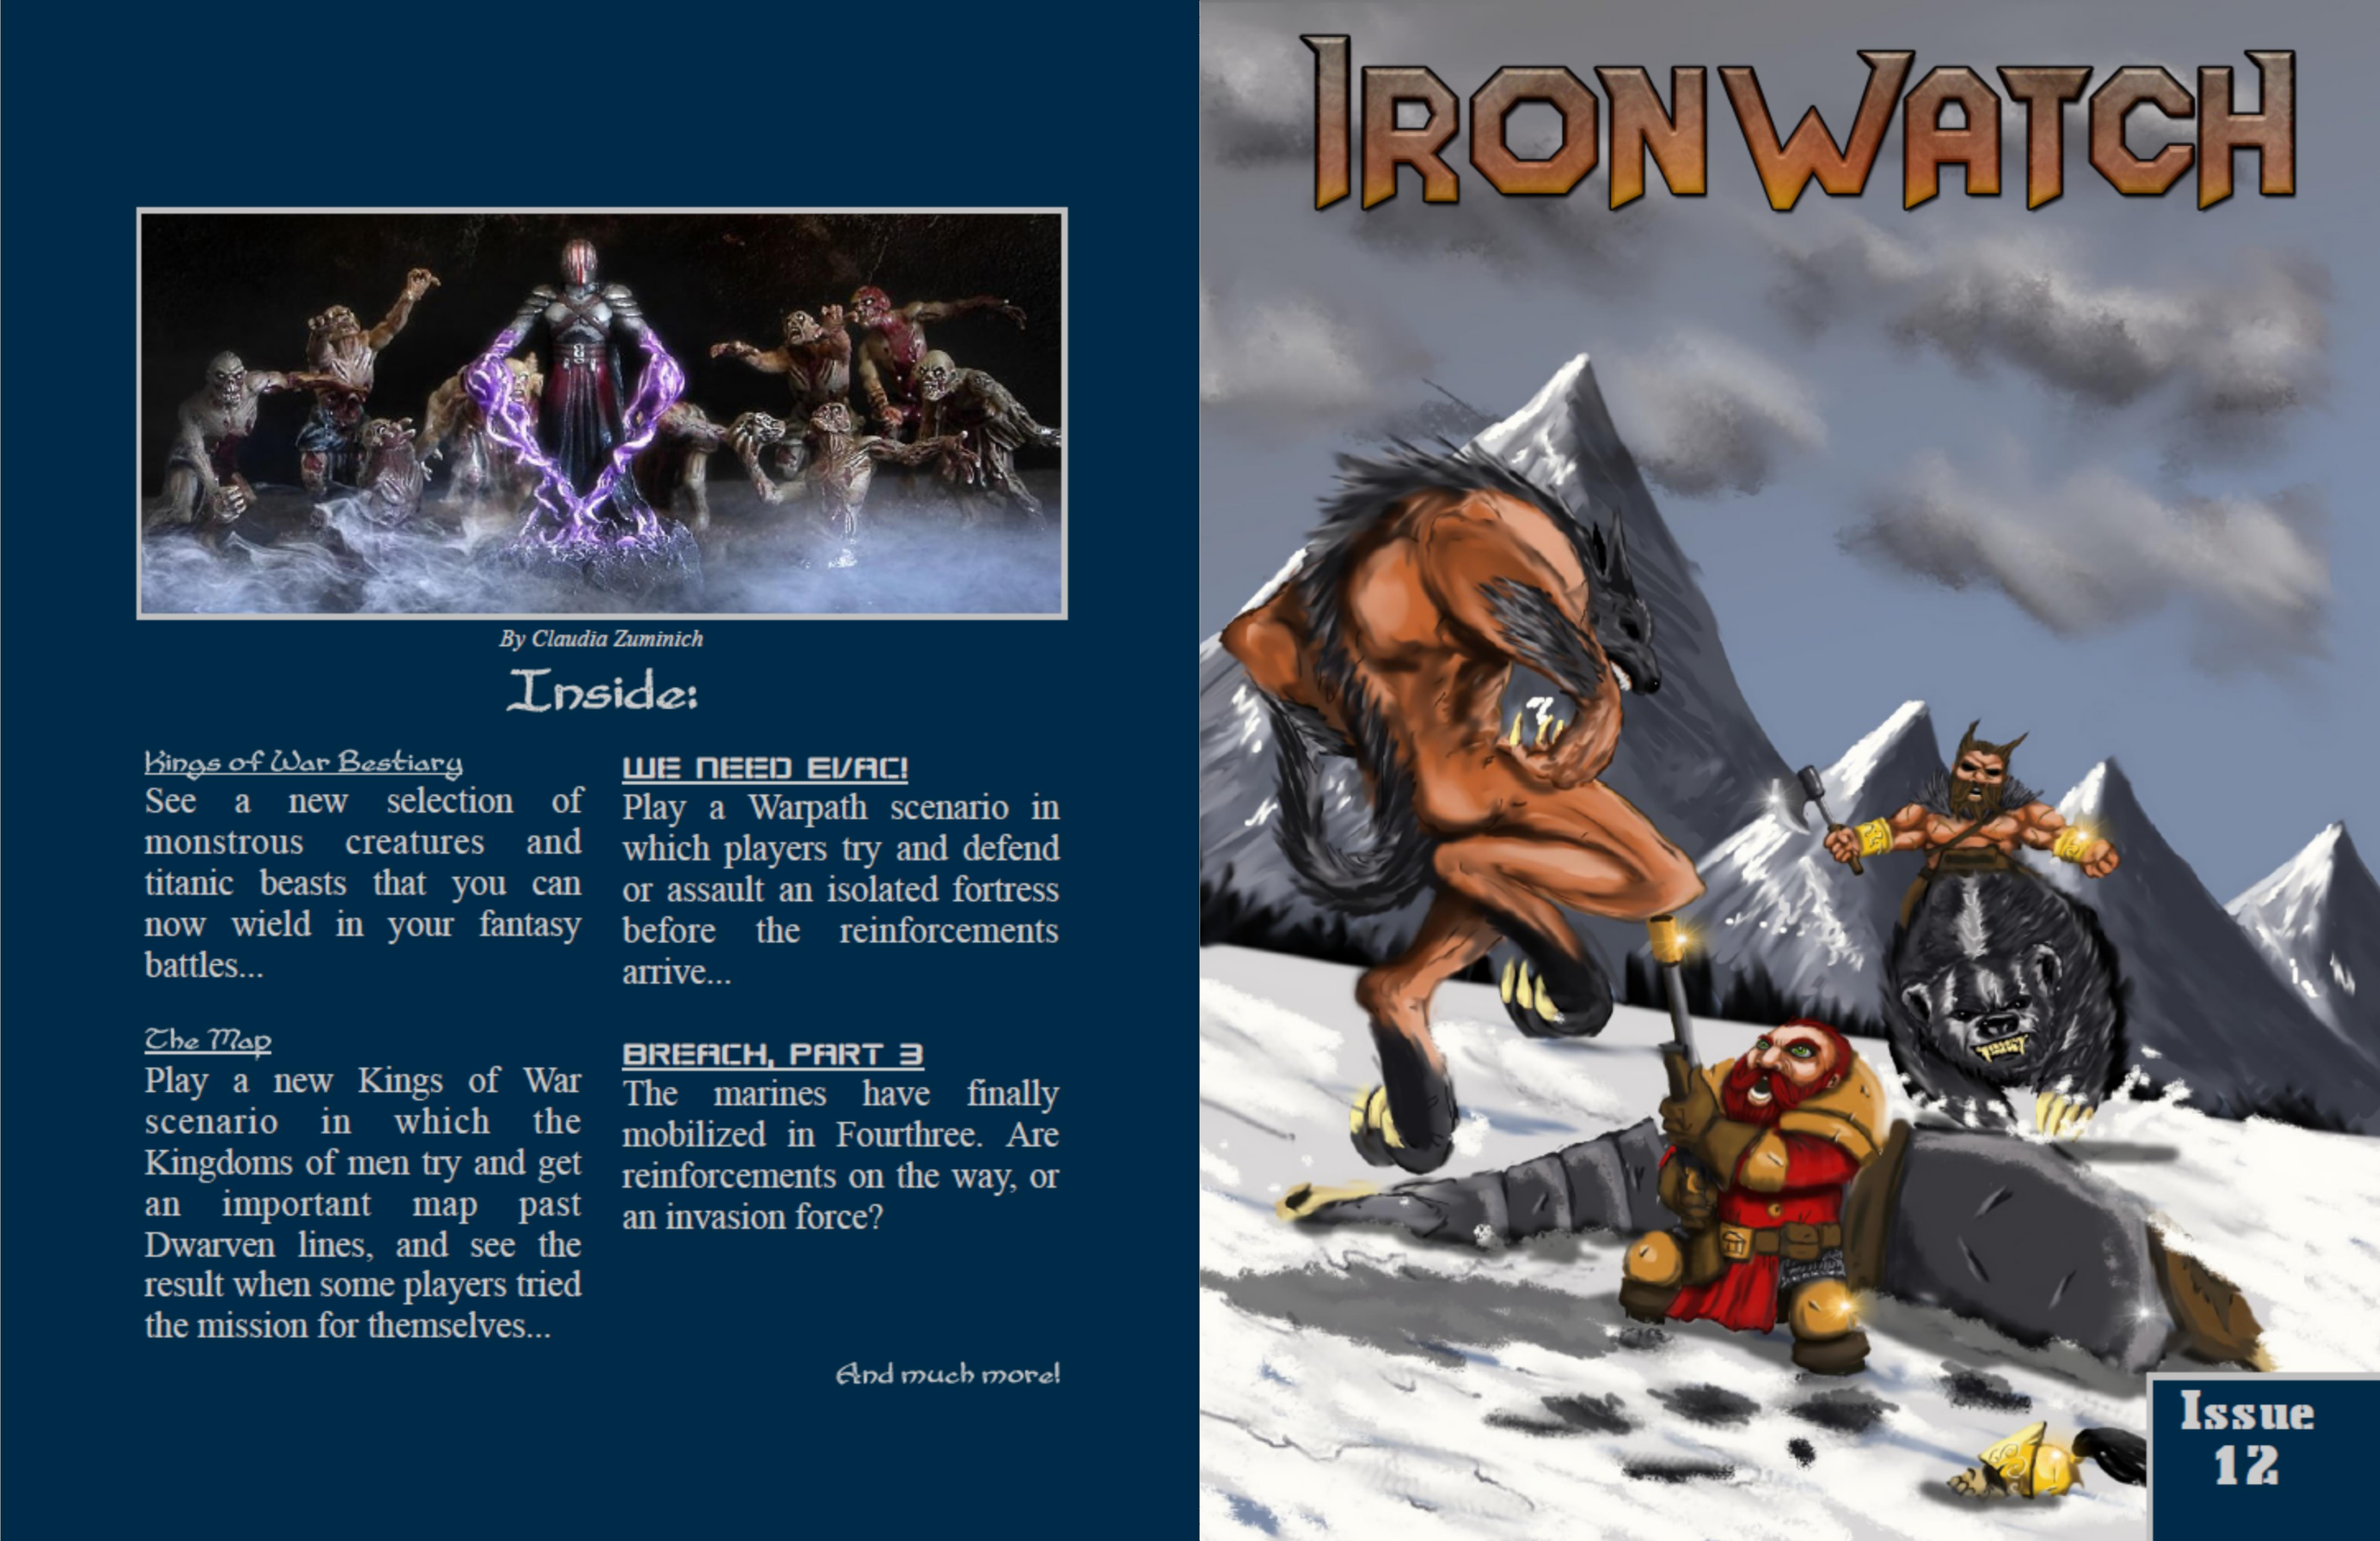 Ironwath Issue 12 cover image